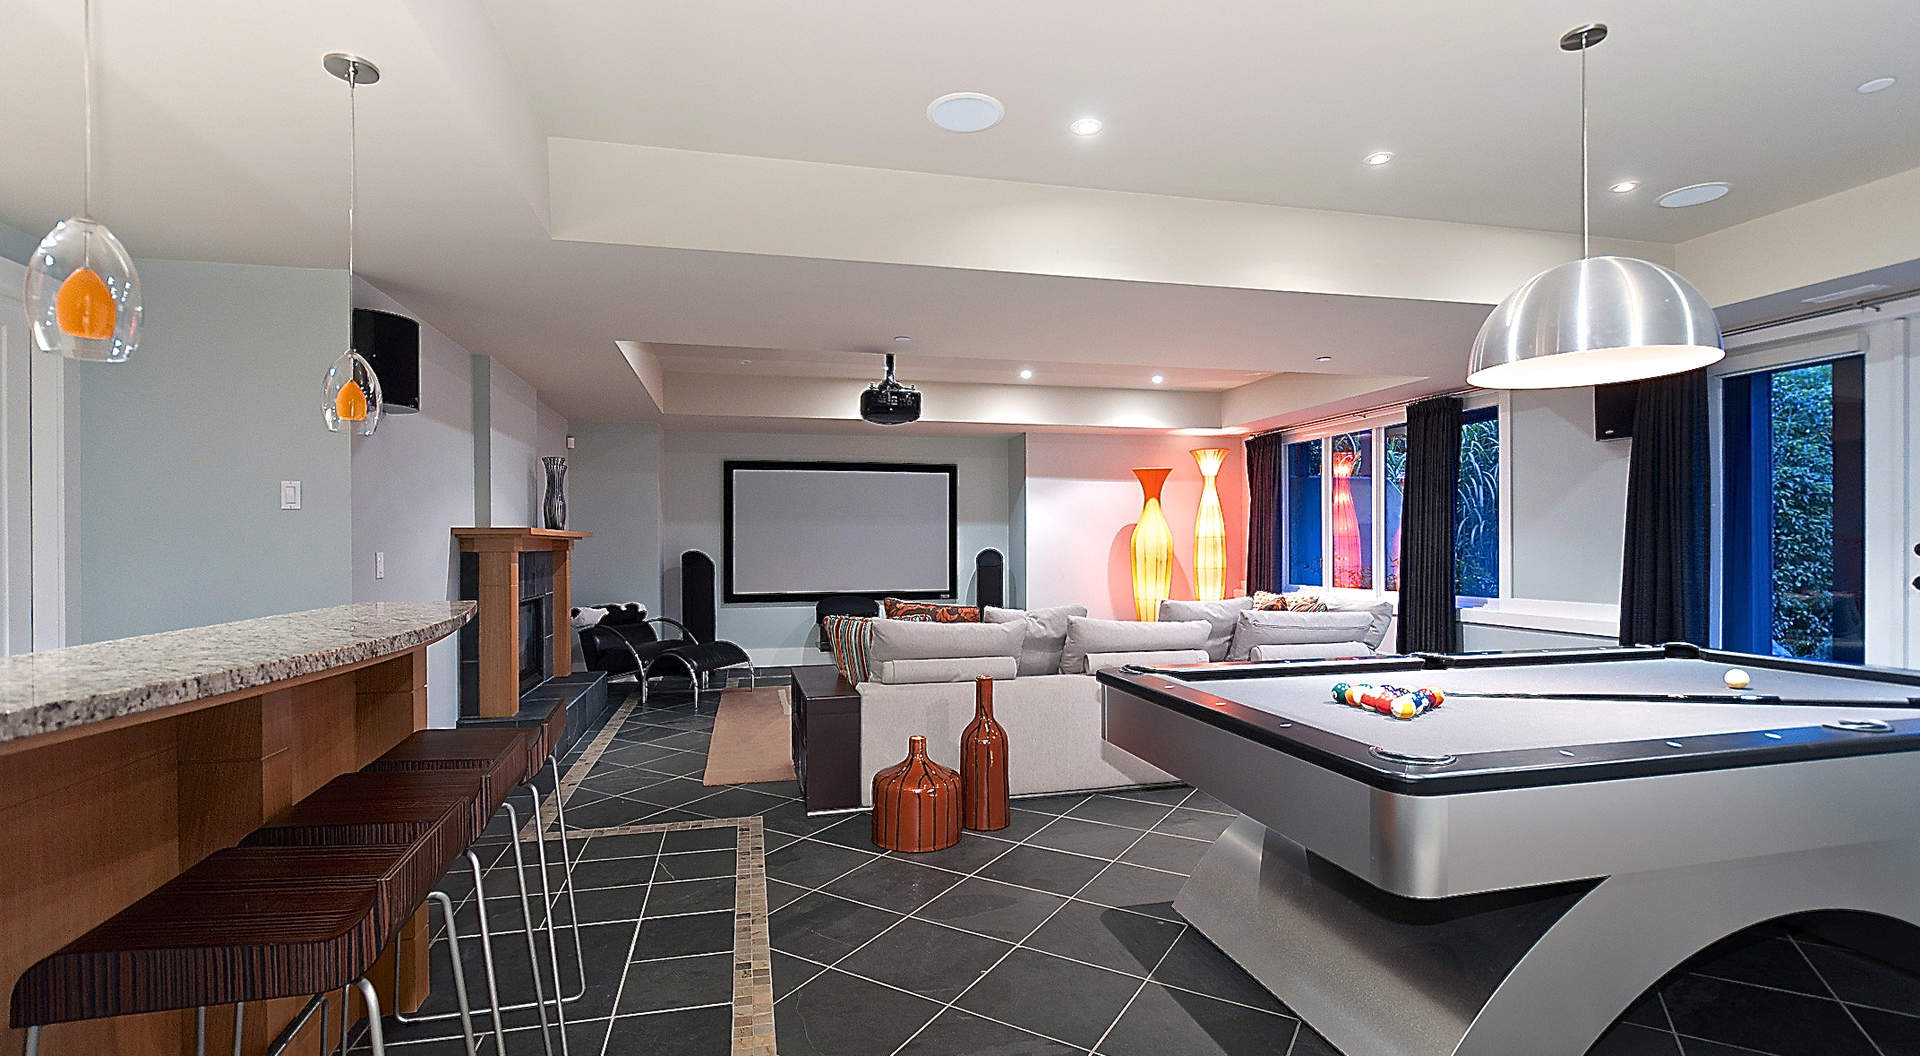 Fantastic Recreation Room with Games & Media Areas to Entertain